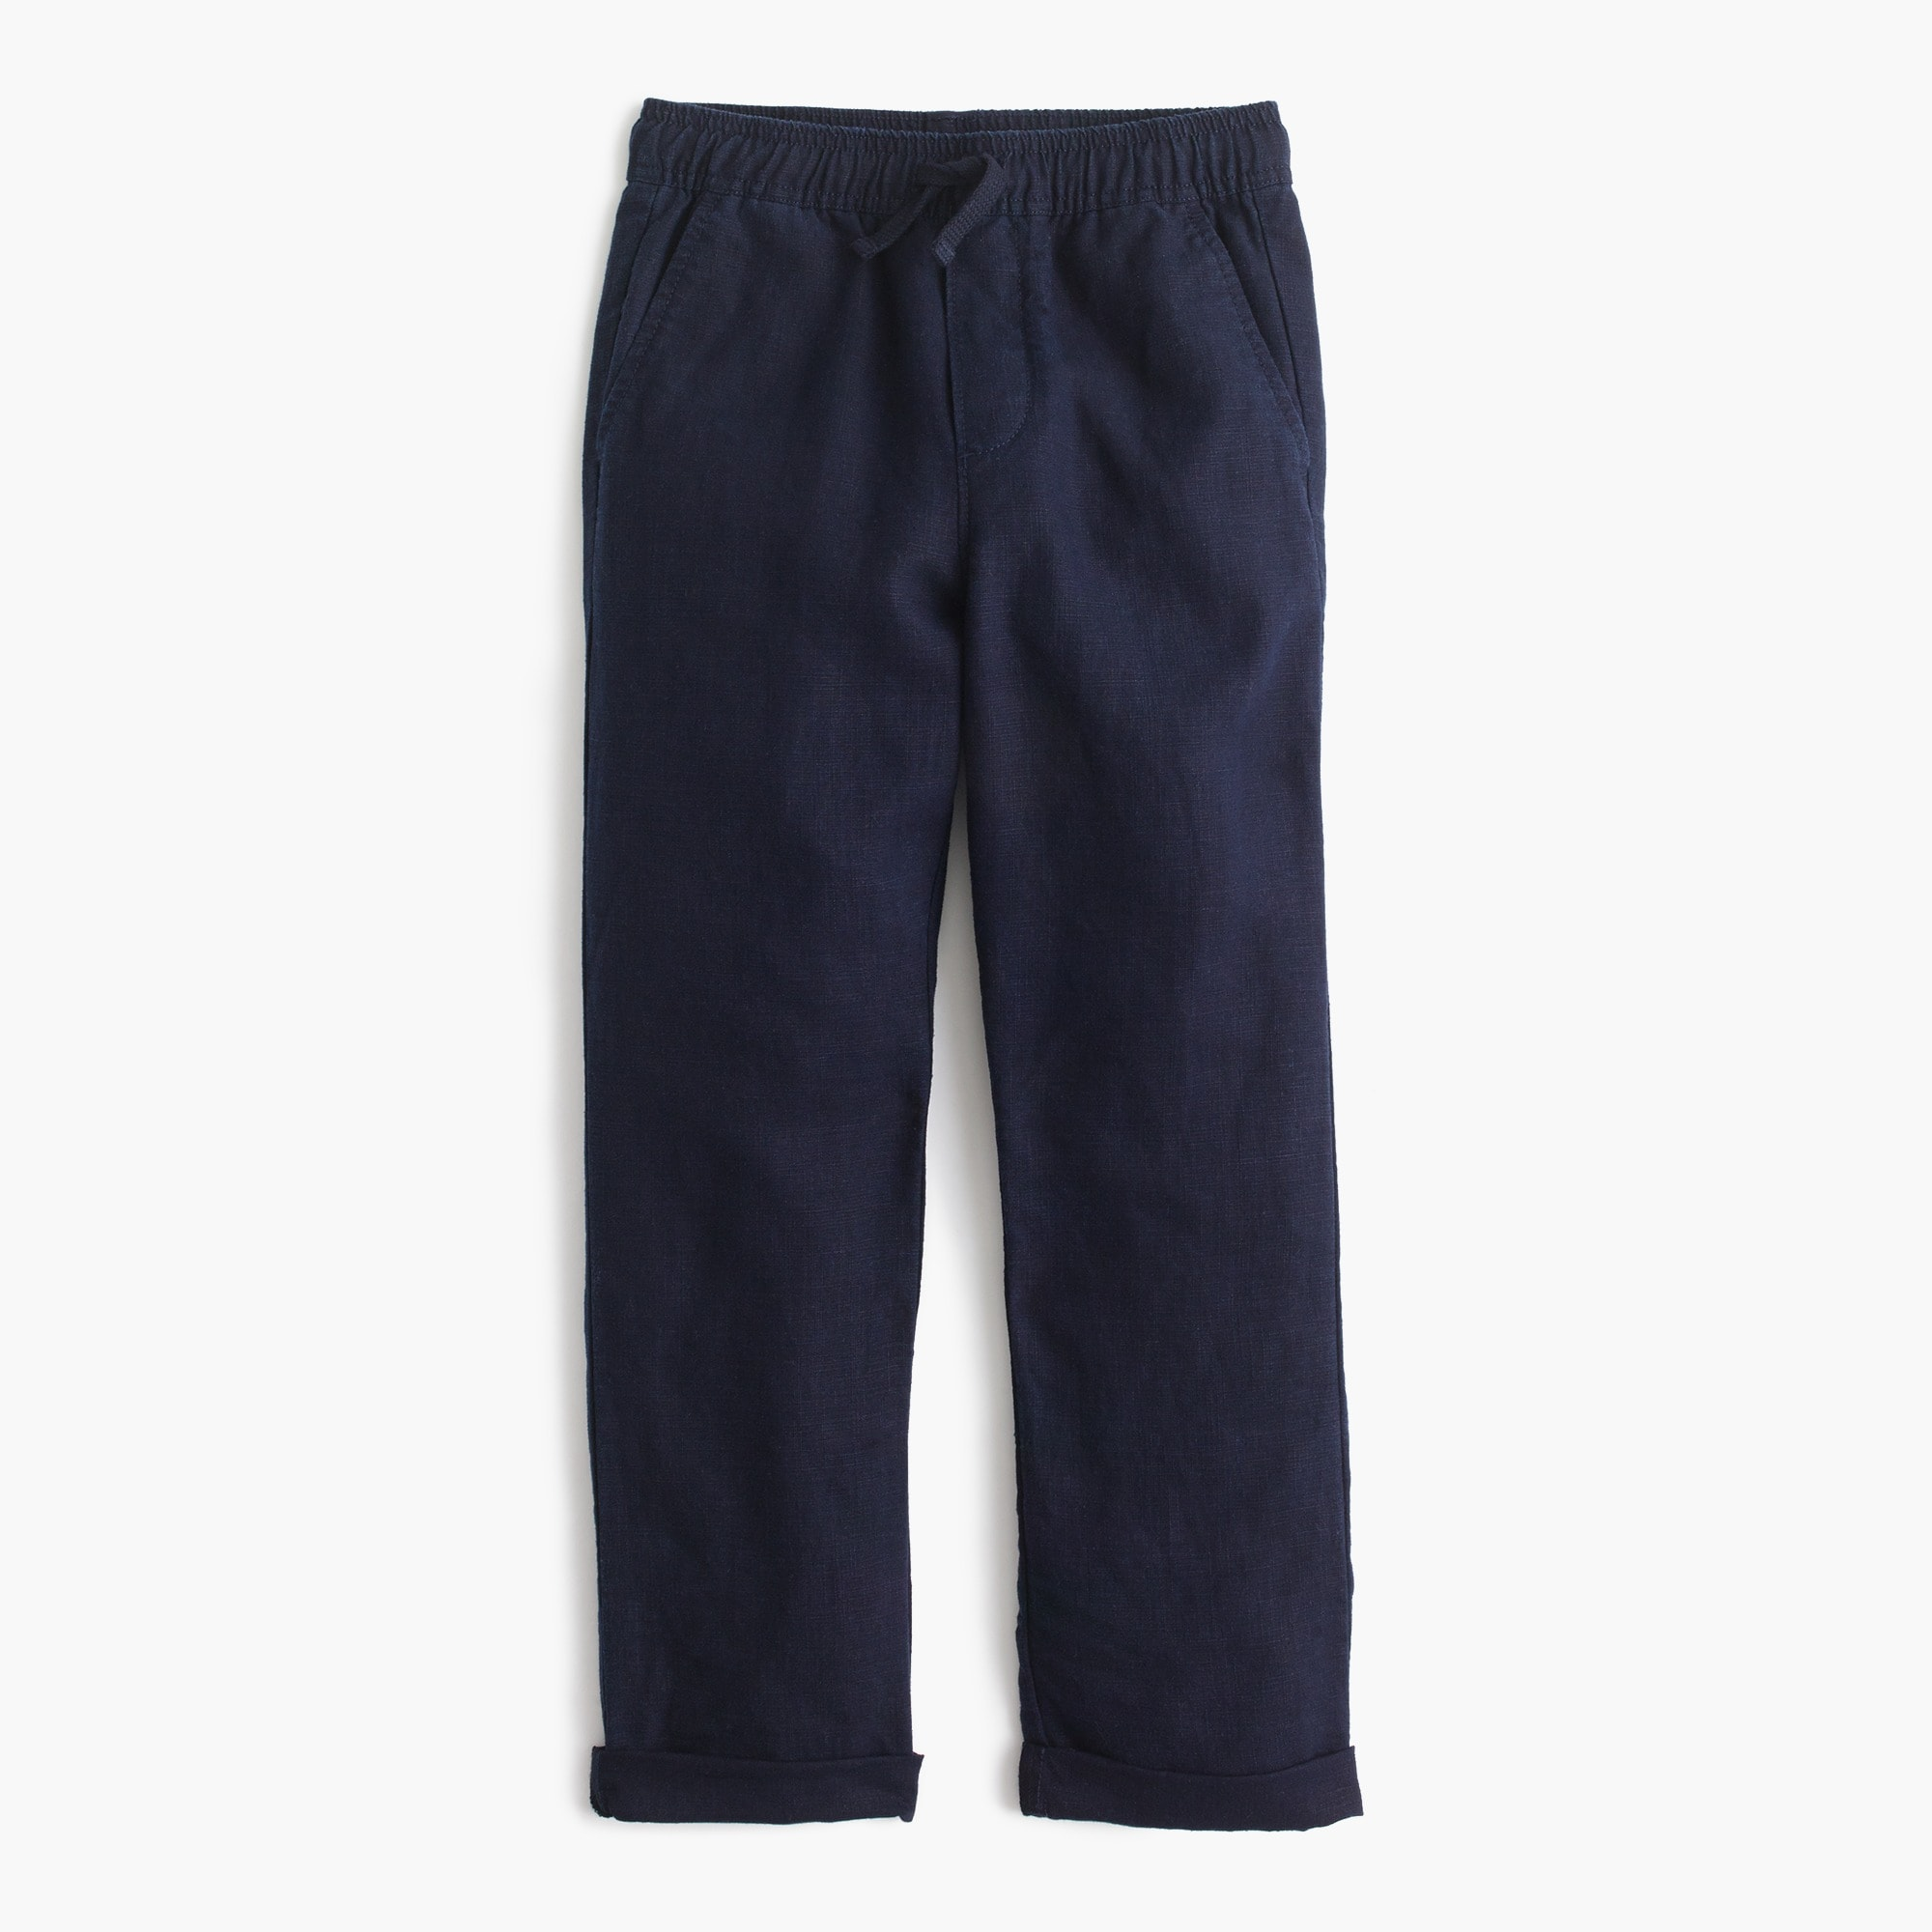 Image 1 for Boys' pull-on pant in linen